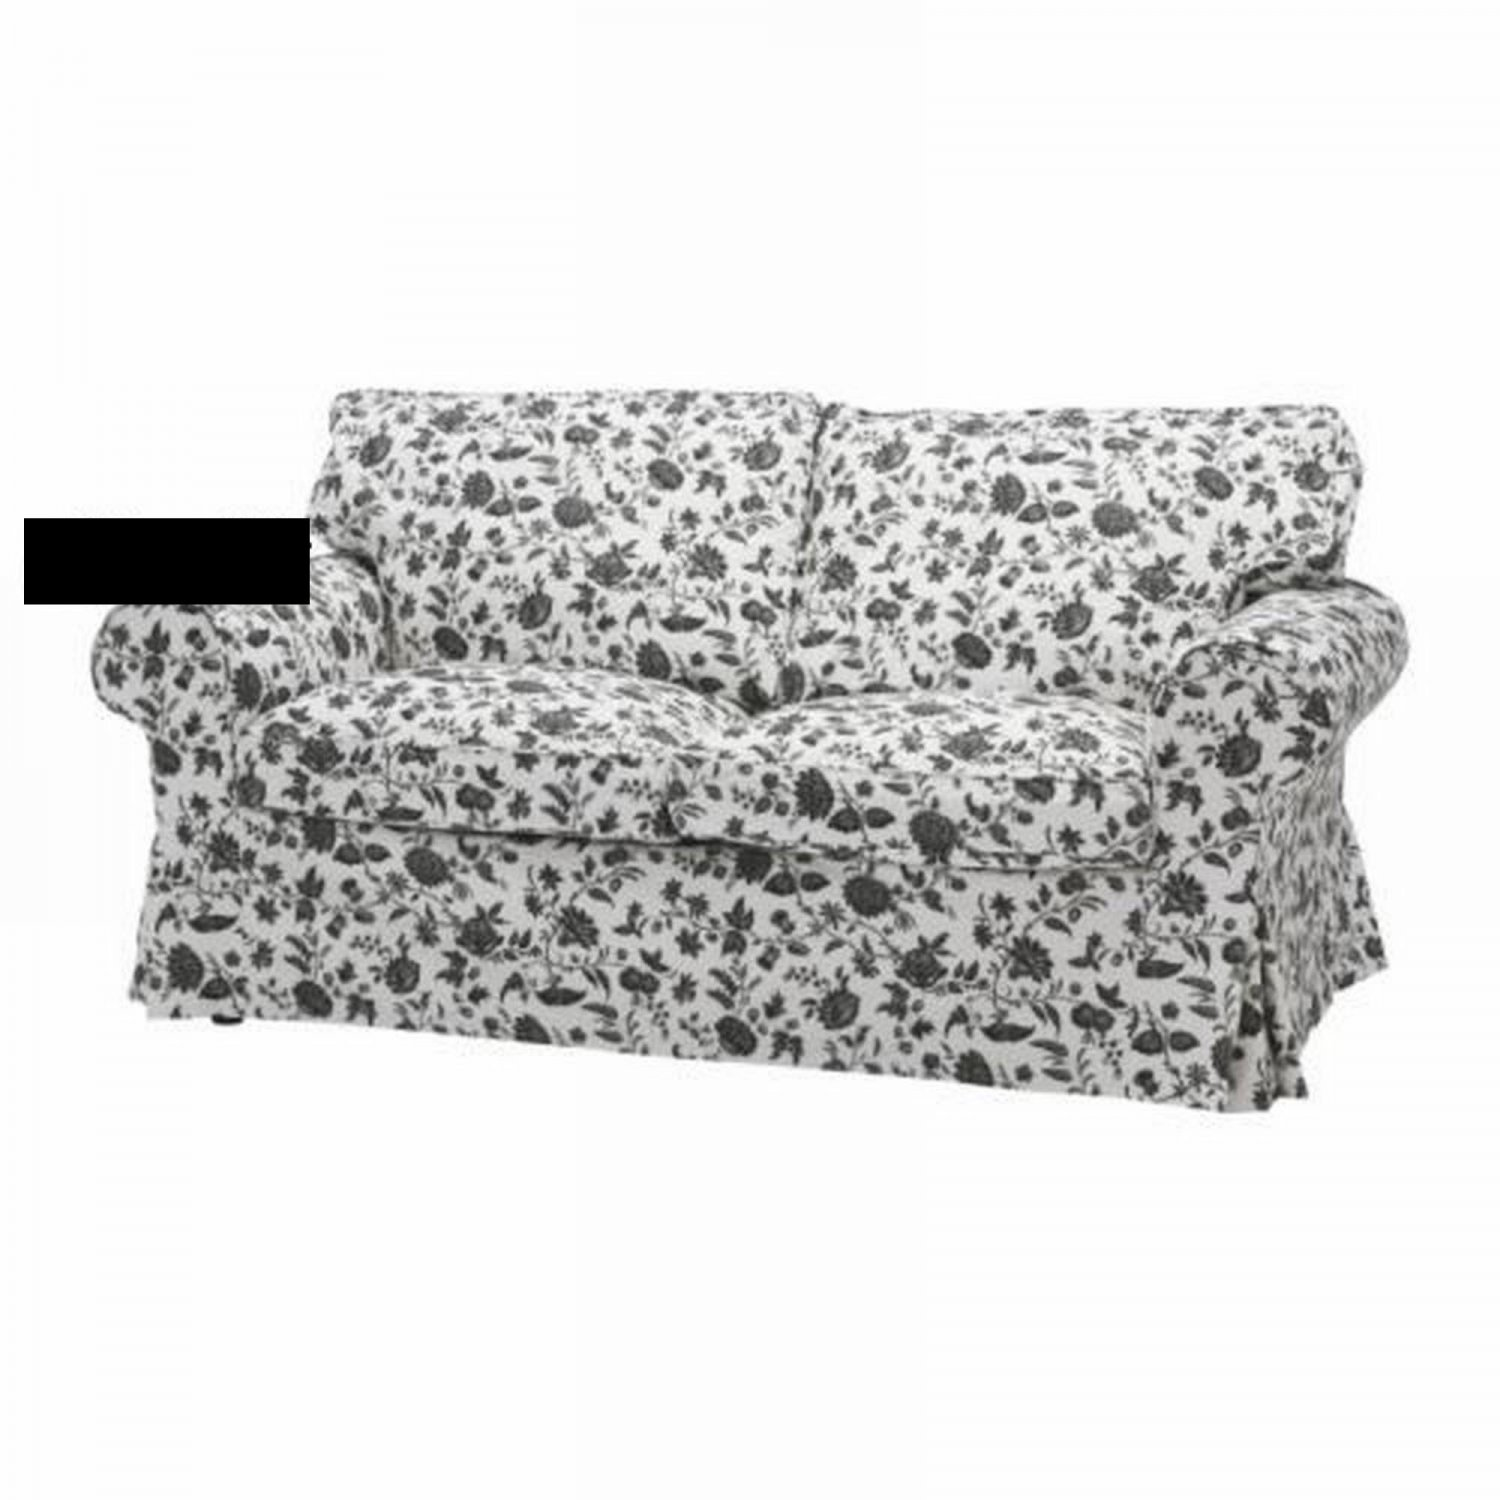 flower sofa covers messina leather collection ikea ektorp bed cover hovby black white bettsofa